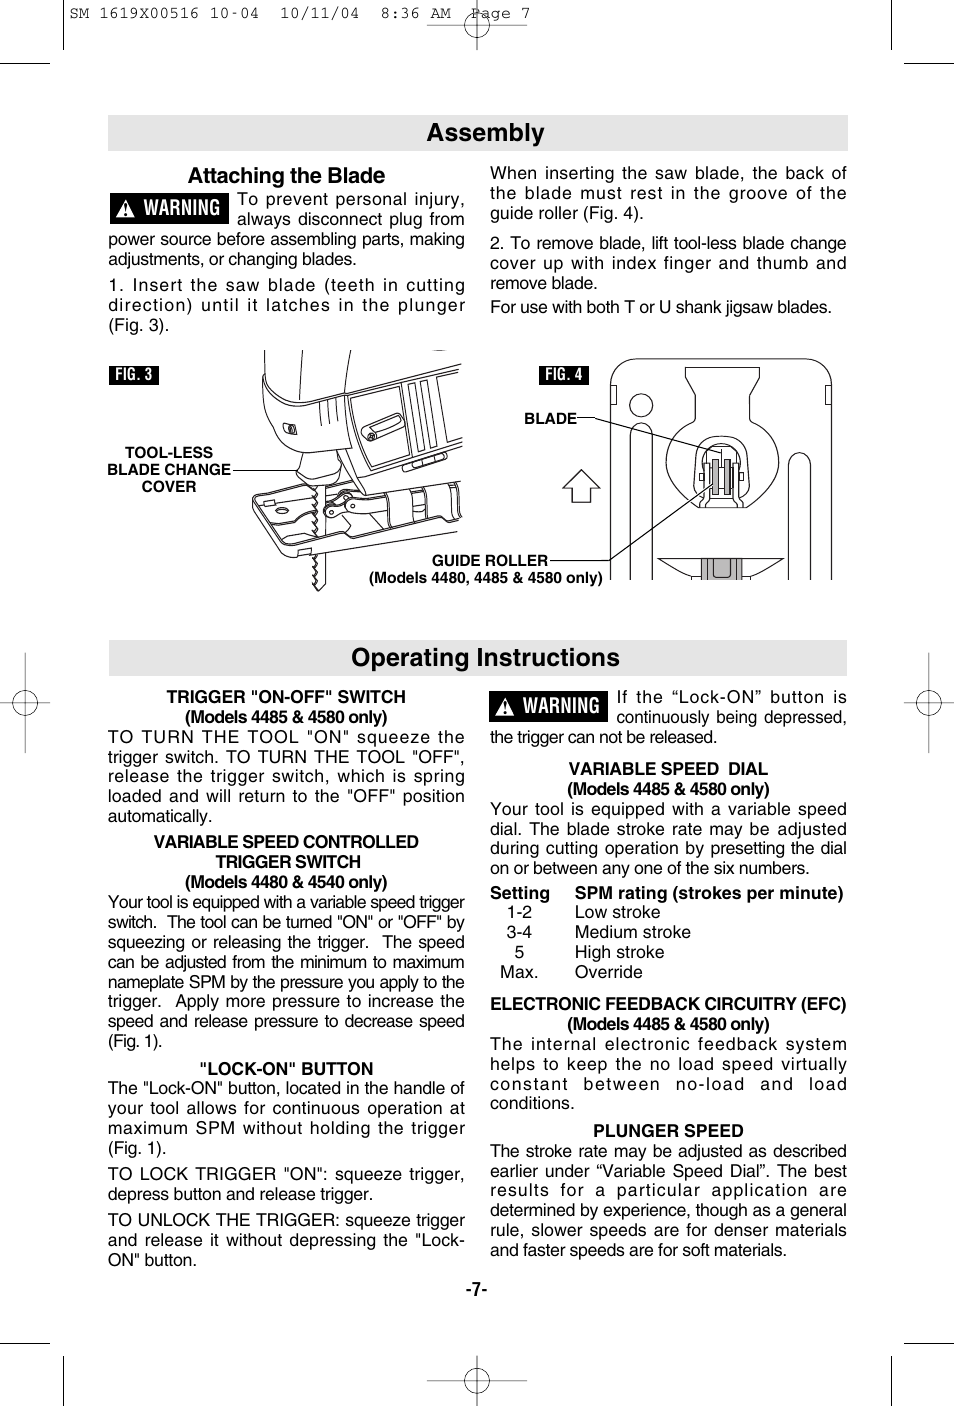 Assembly Operating Instructions Attaching The Blad Skil 4485